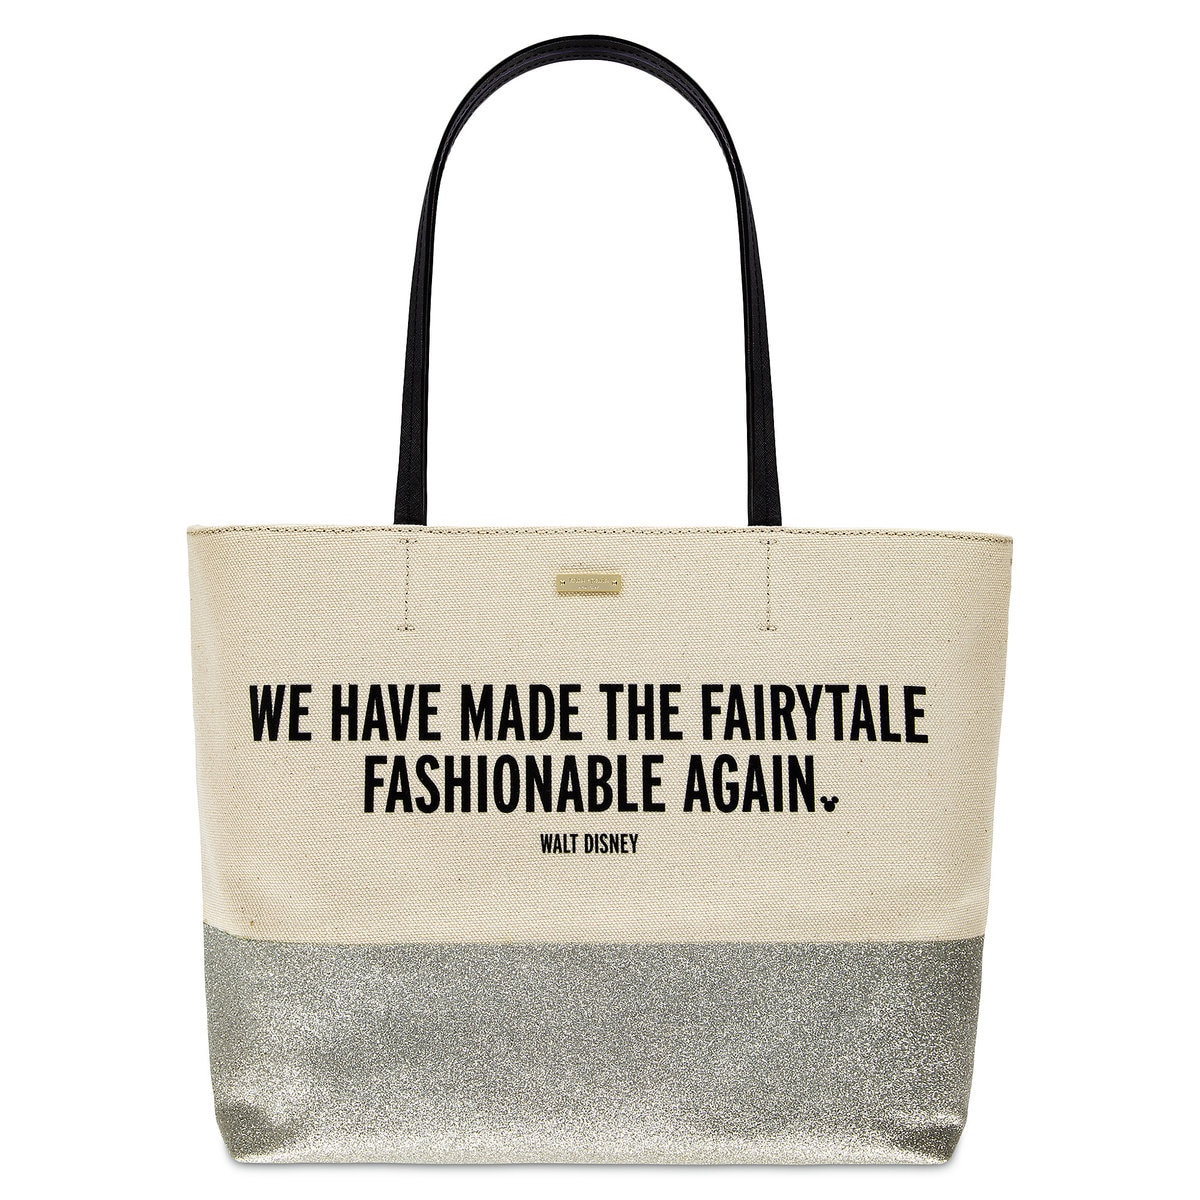 1542b53ca04 ... Tote by kate spade new york.  218.00  163.50. Product Image of   We  Have Made the Fairytale Fashionable Again   Canvas Glitter